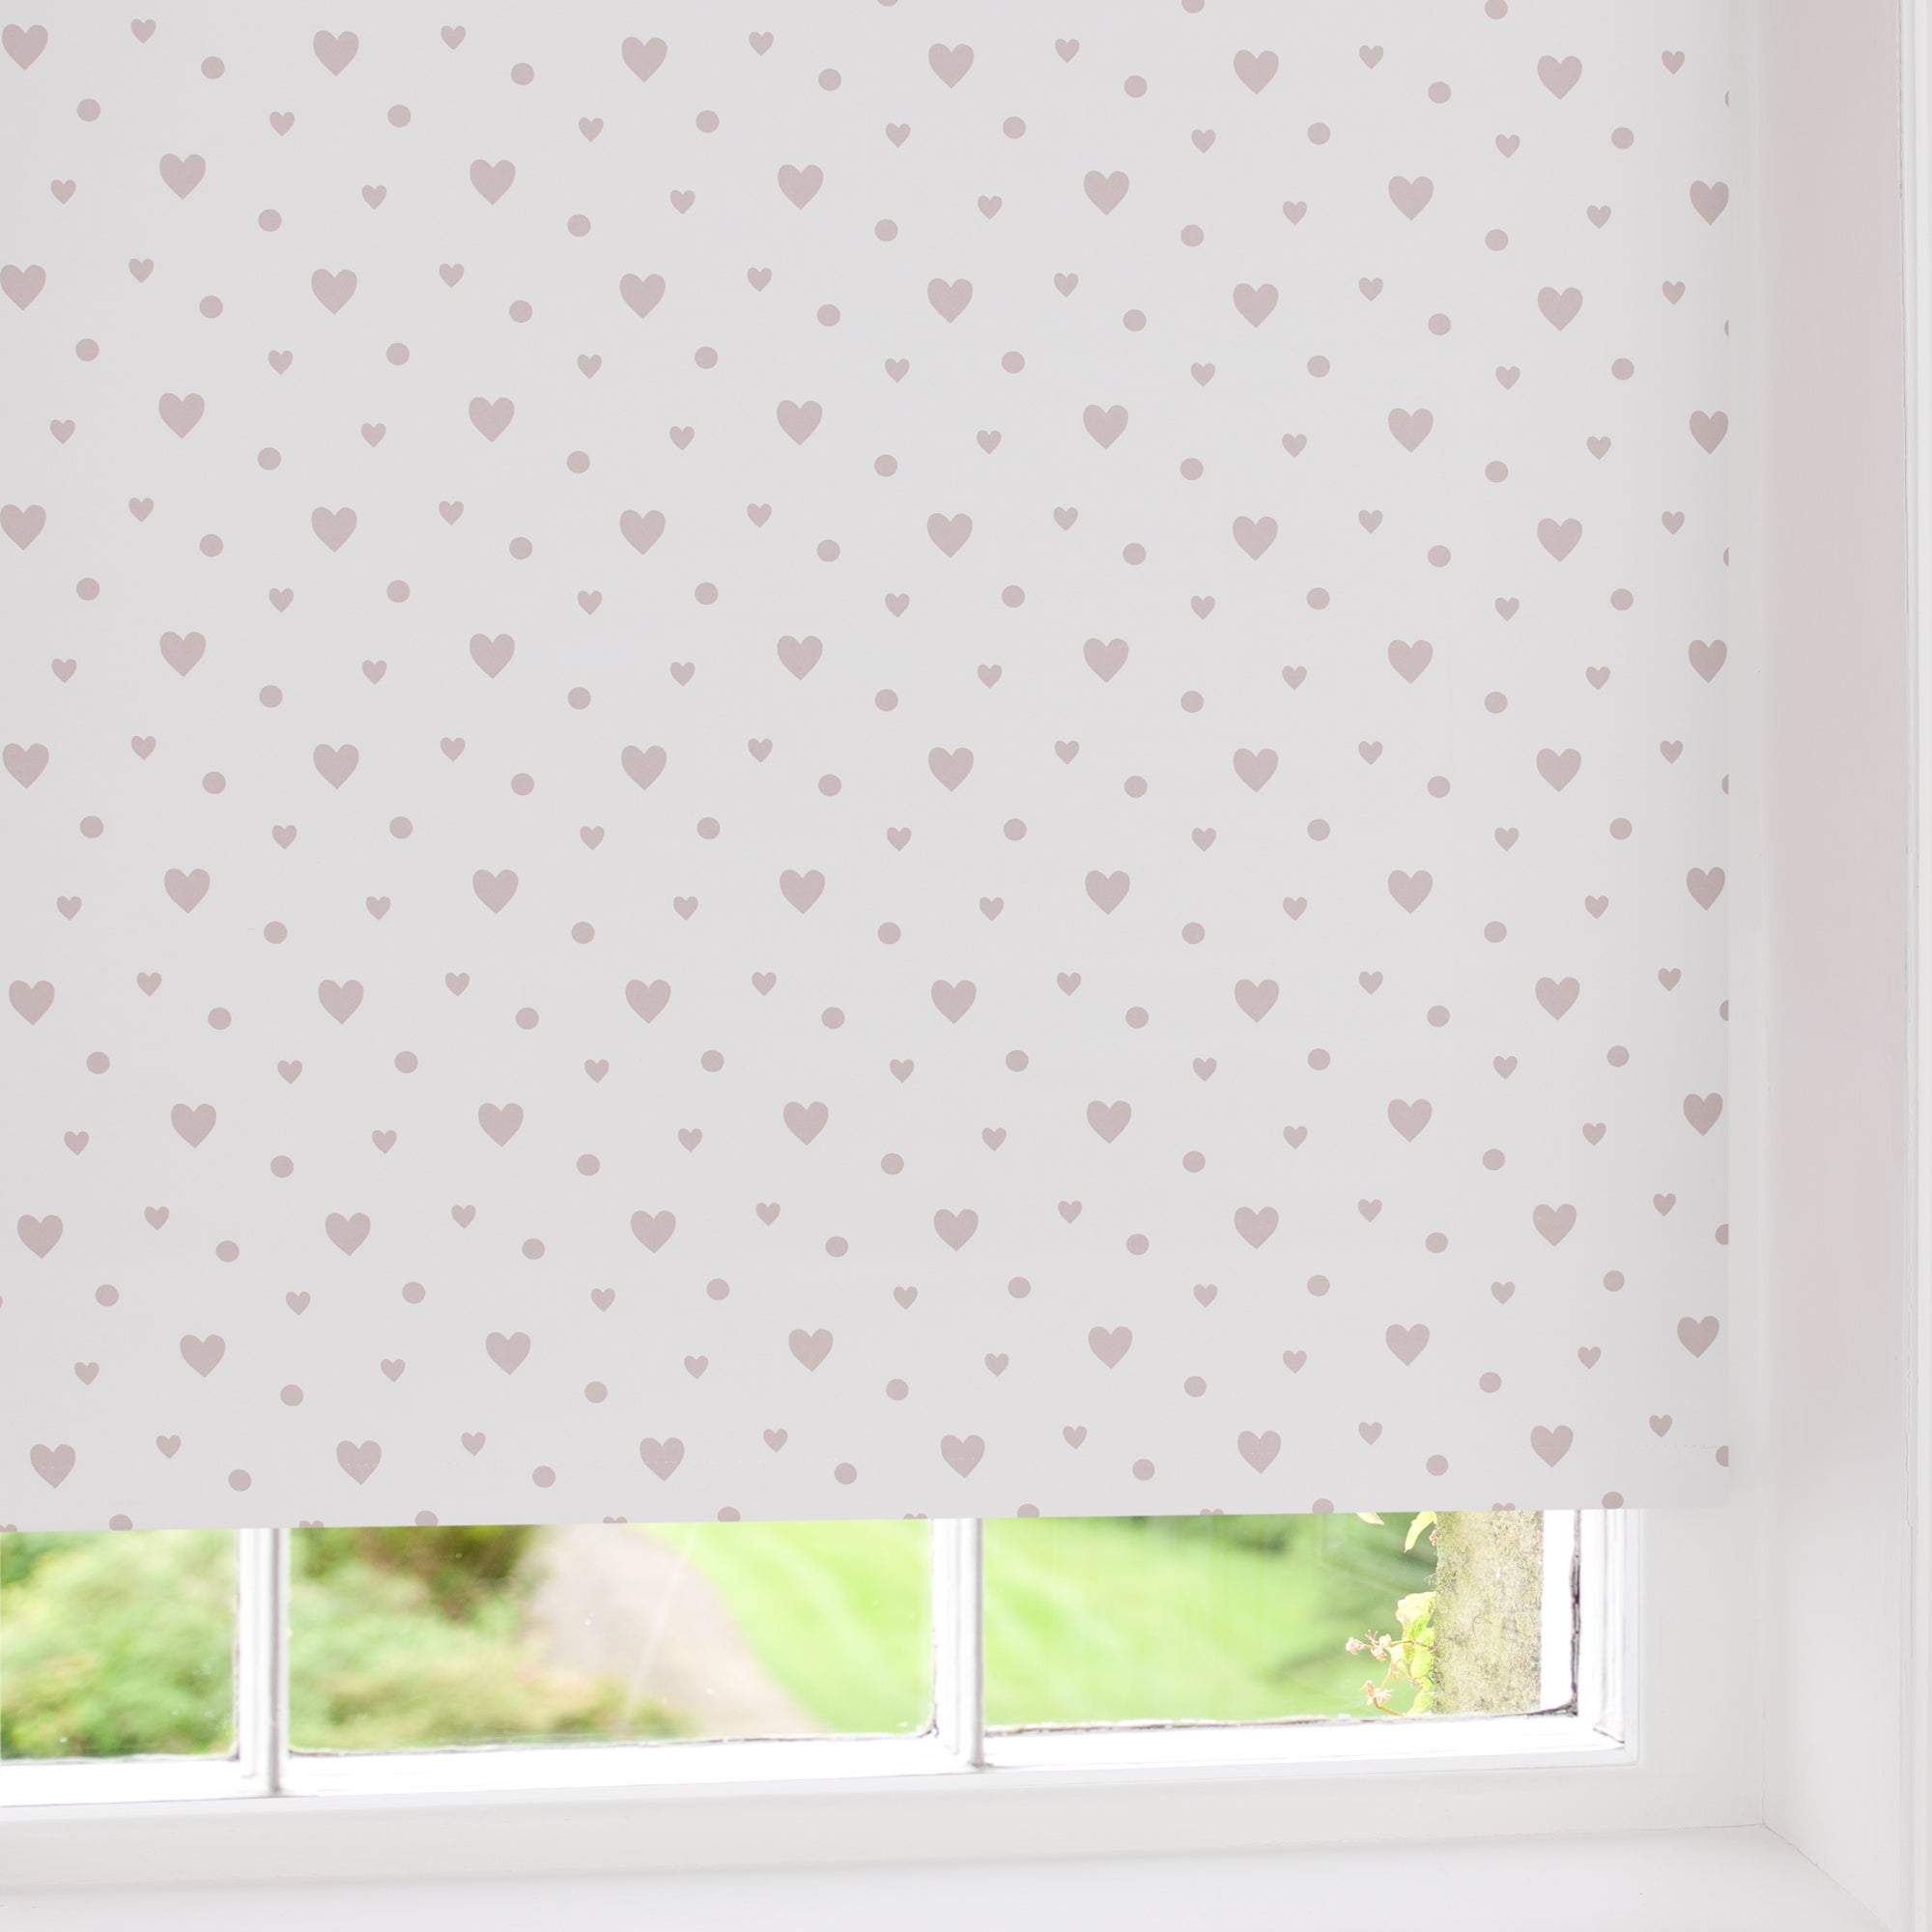 Hearts Blackout Roller Blind